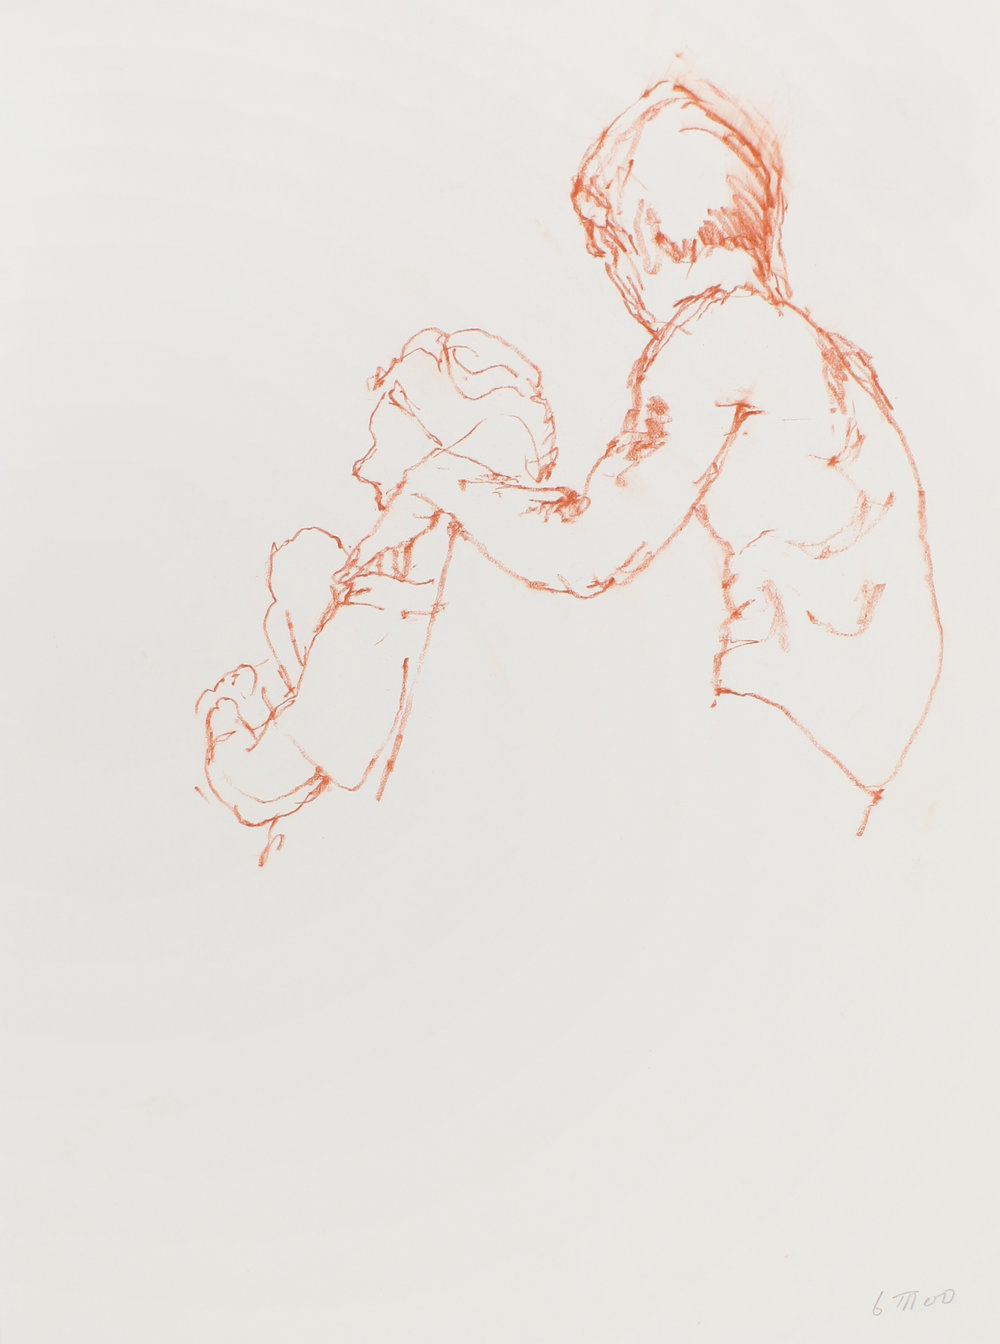 2000_Seated_Couple_with_Outline_of_Chair_red_conte_on_paper_15x11in_WPF526.jpg